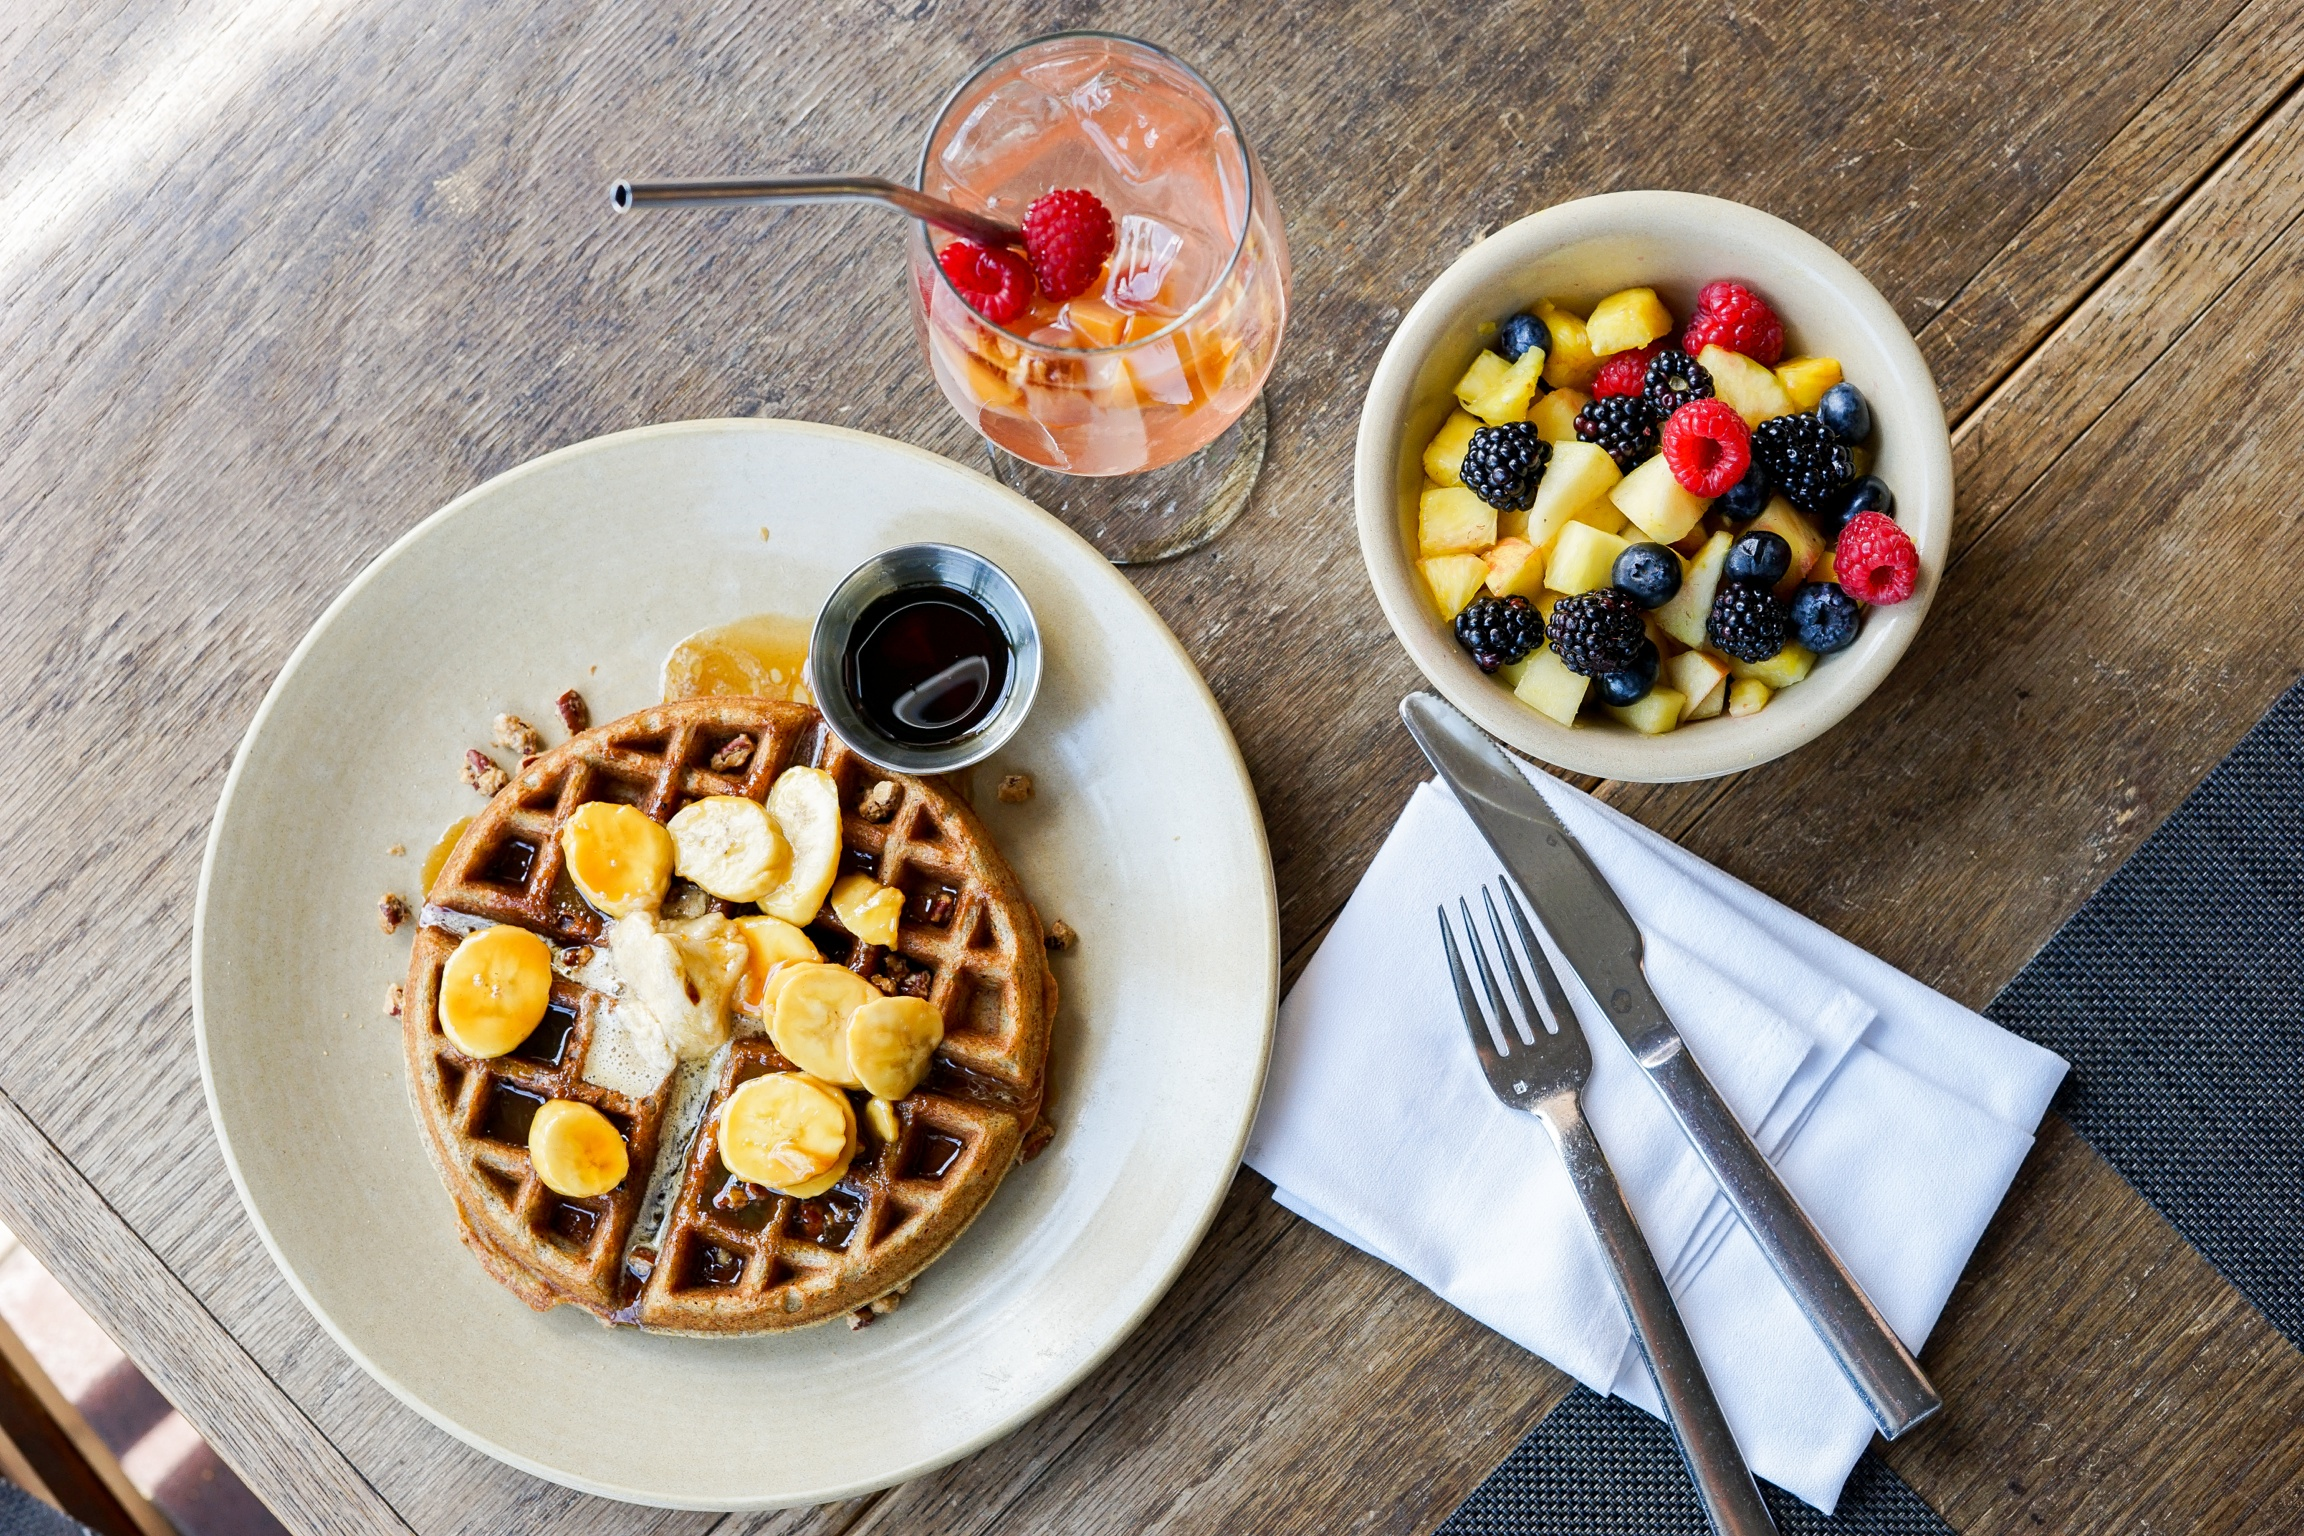 Buckwheat Waffle, Seasonal Sangria, and Fruit Salad at Akasha Restaurant, Culver City, CA